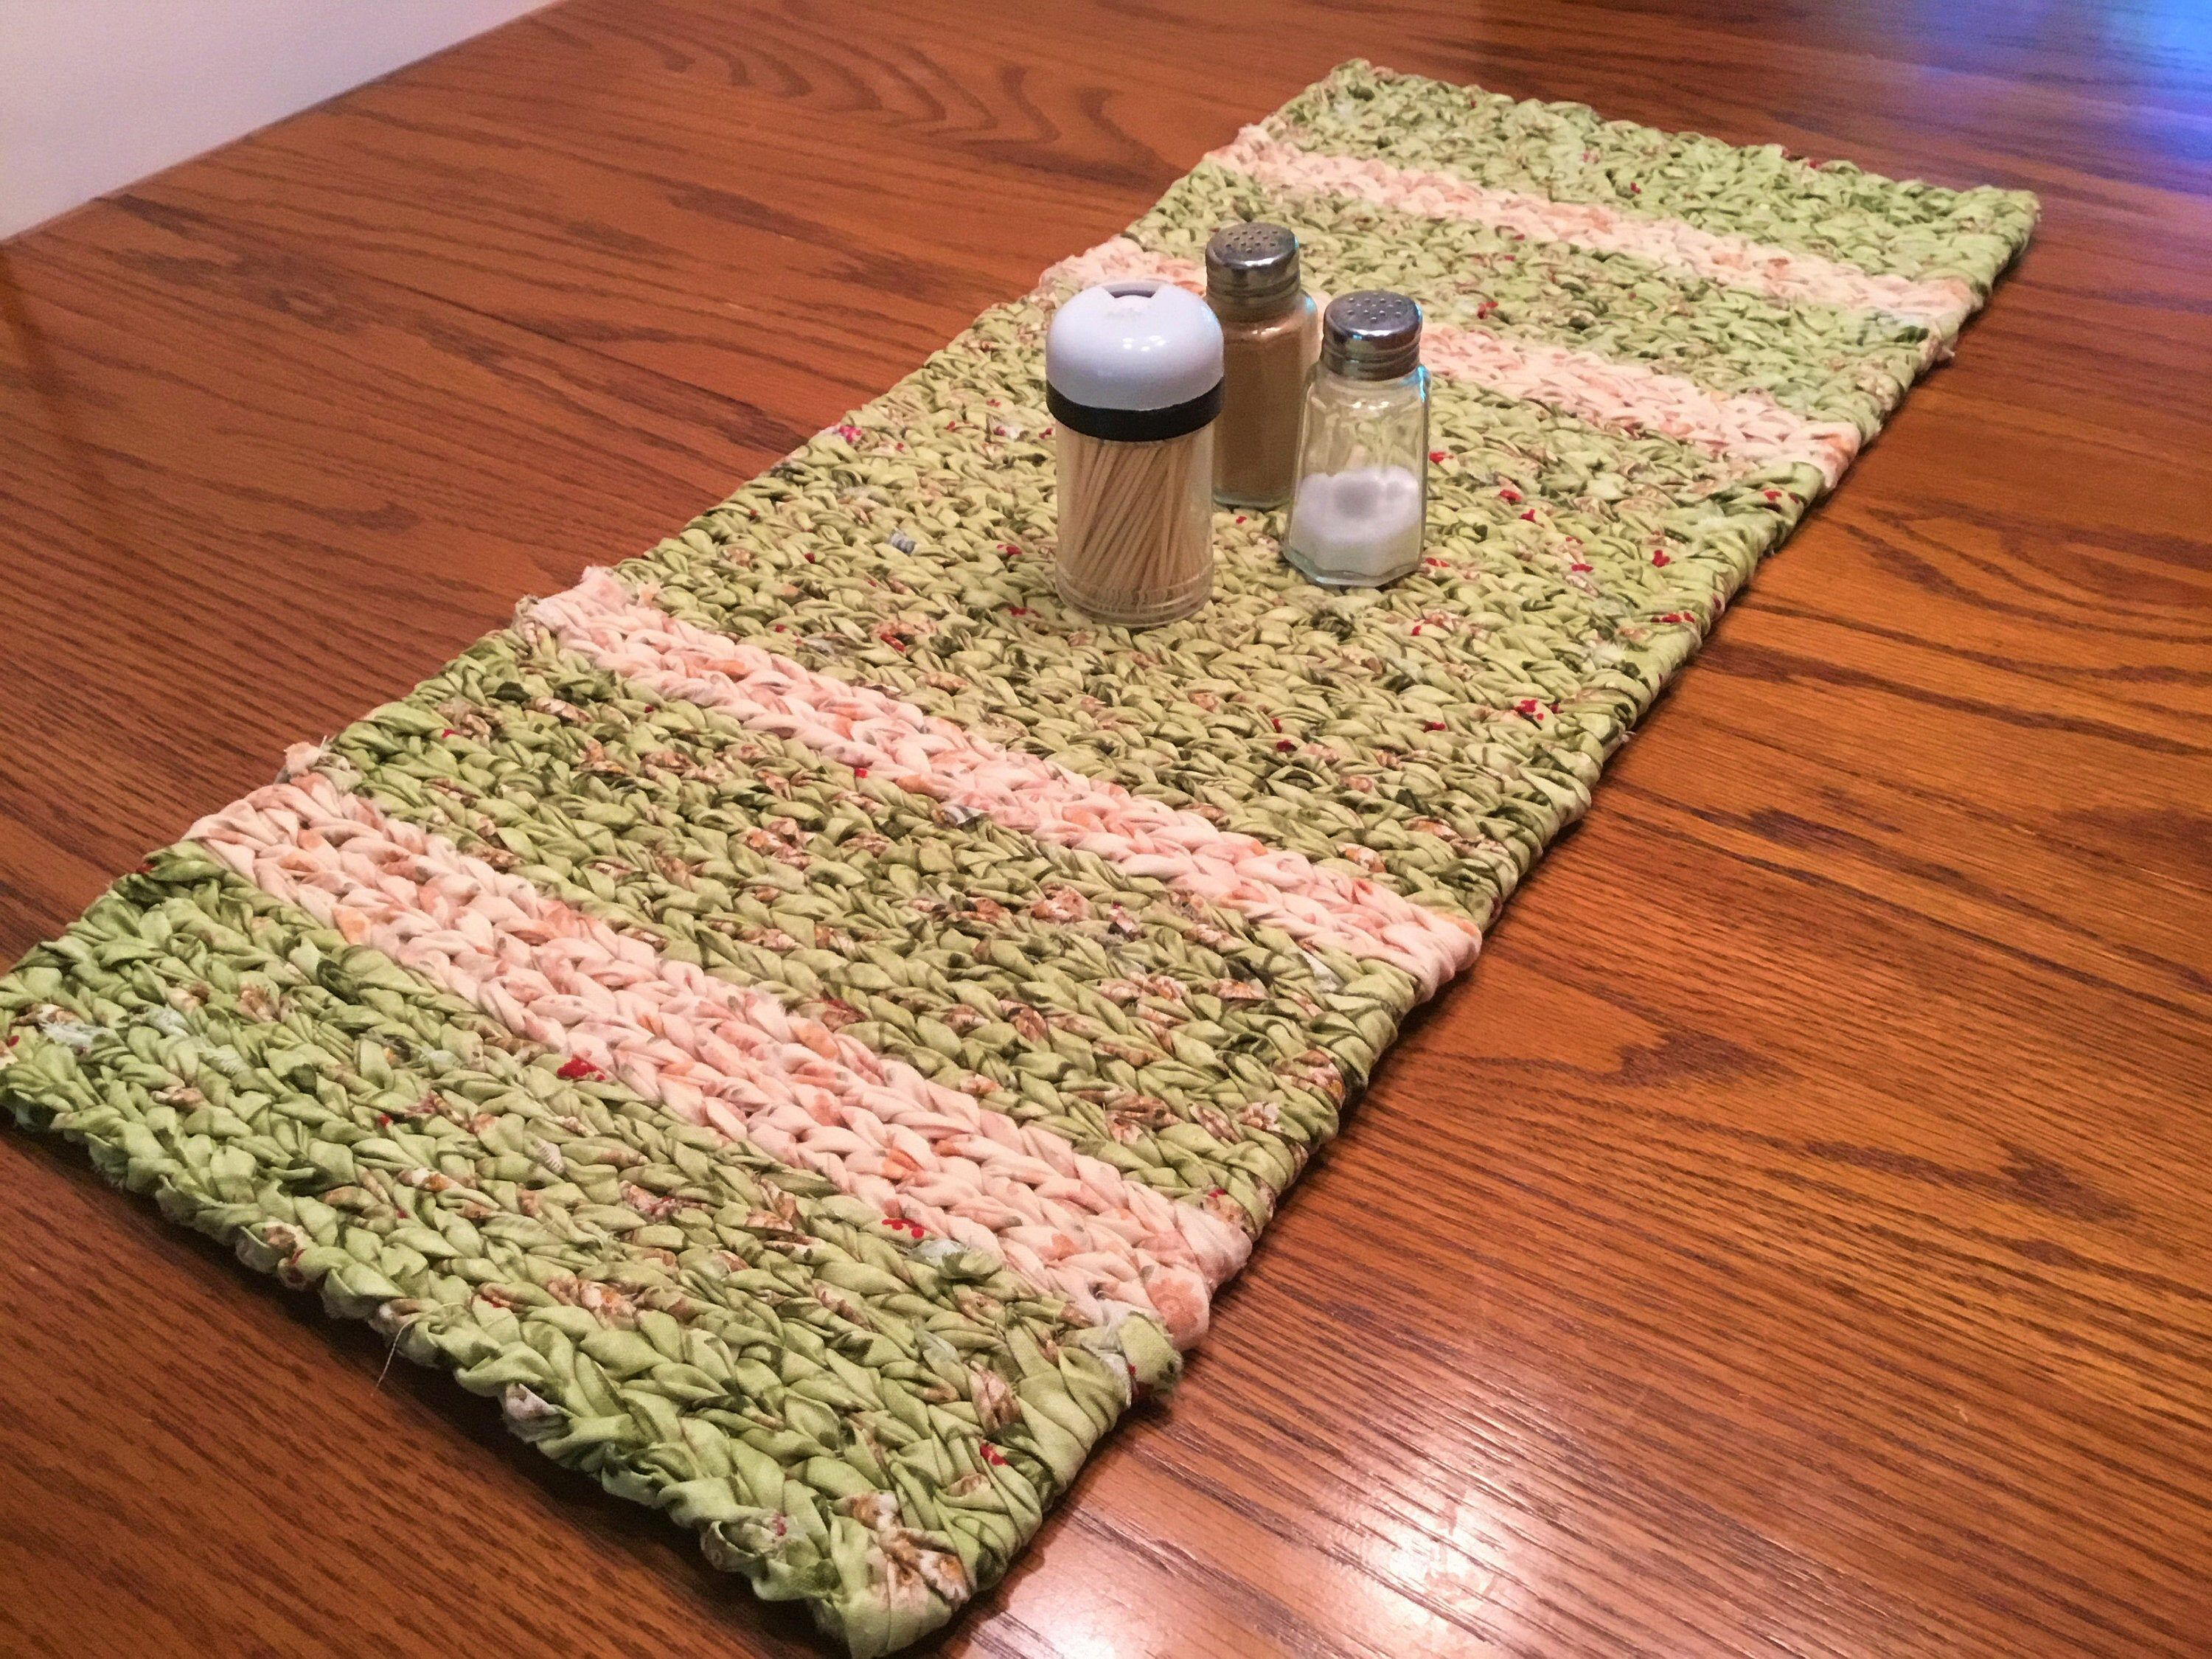 Handmade Twined Rag Rug Table Runner Country Chic Green Tan And Cream 100 Cotton Ready To Ship Washable In 2020 Rag Rug Table Runners Rugs